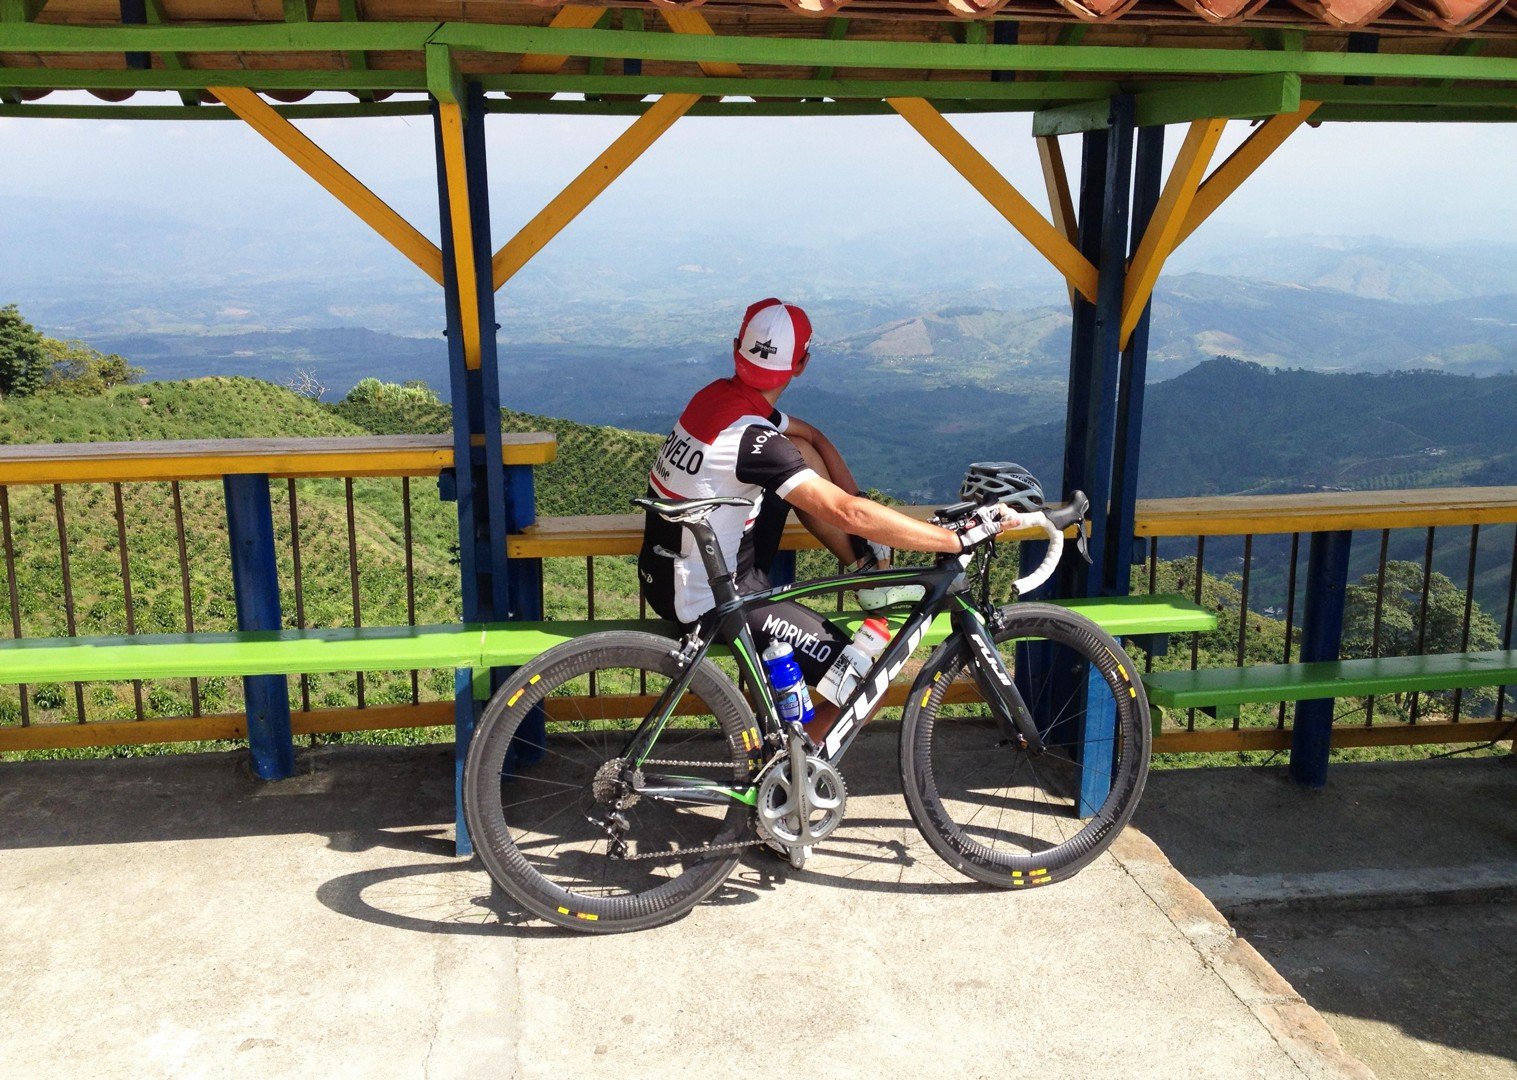 road-cycling-holiday-in-clombia-with-skedaddle-andean-mountains.JPG - Colombia - Emerald Mountains - Road Cycling